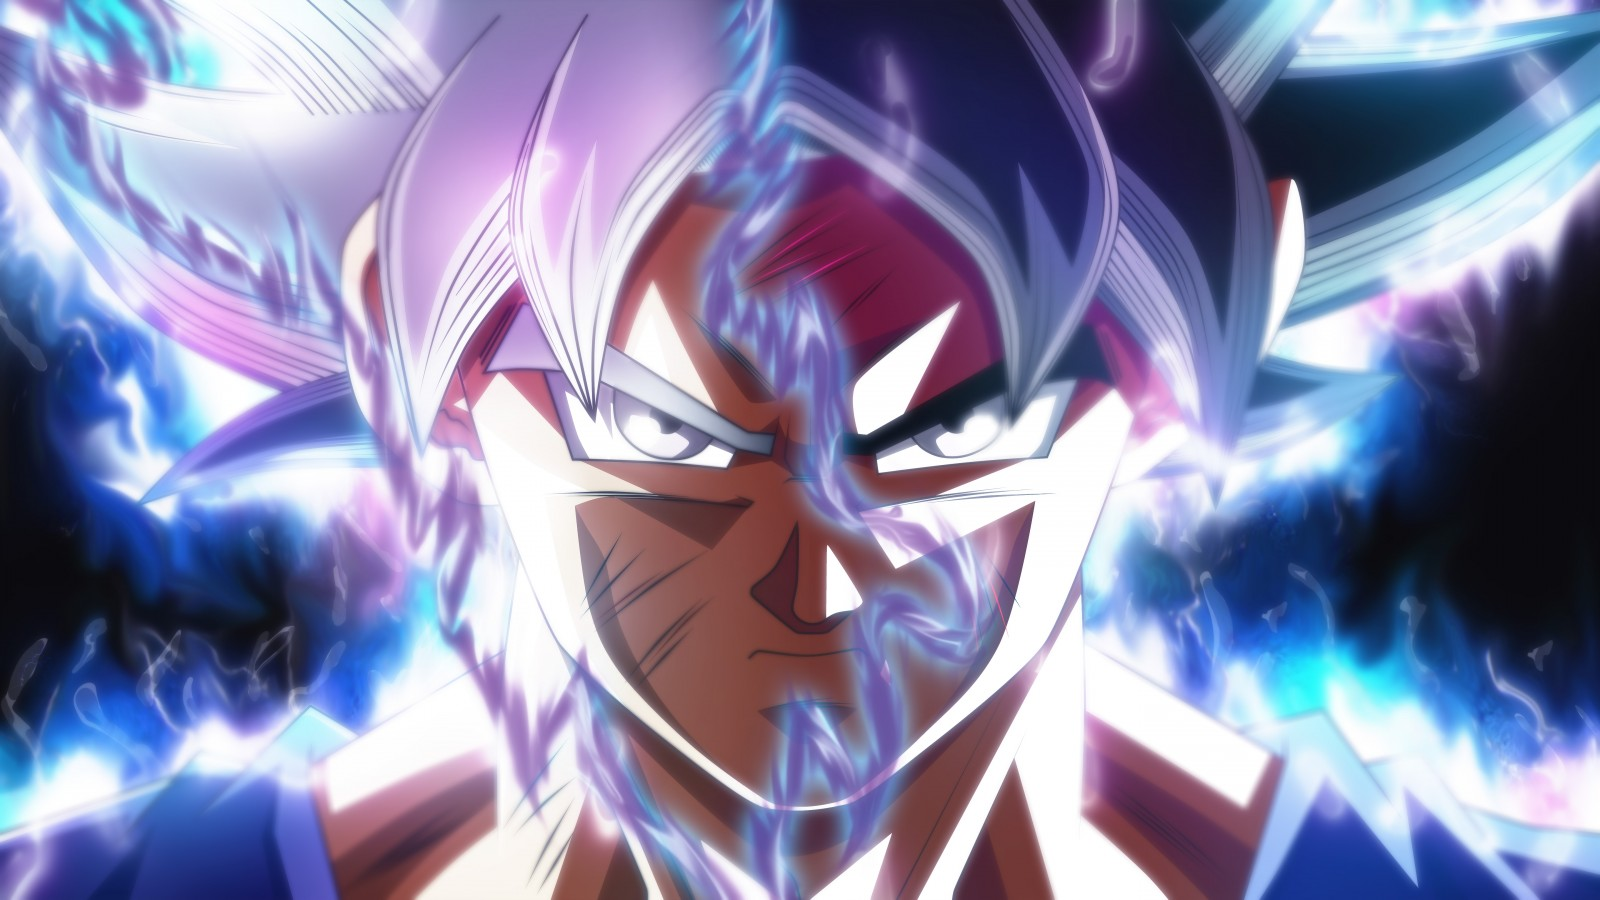 Hd Wide Wallpapers Nature Goku Ultra Instinct Dragon Ball Super 5k Wallpapers Hd